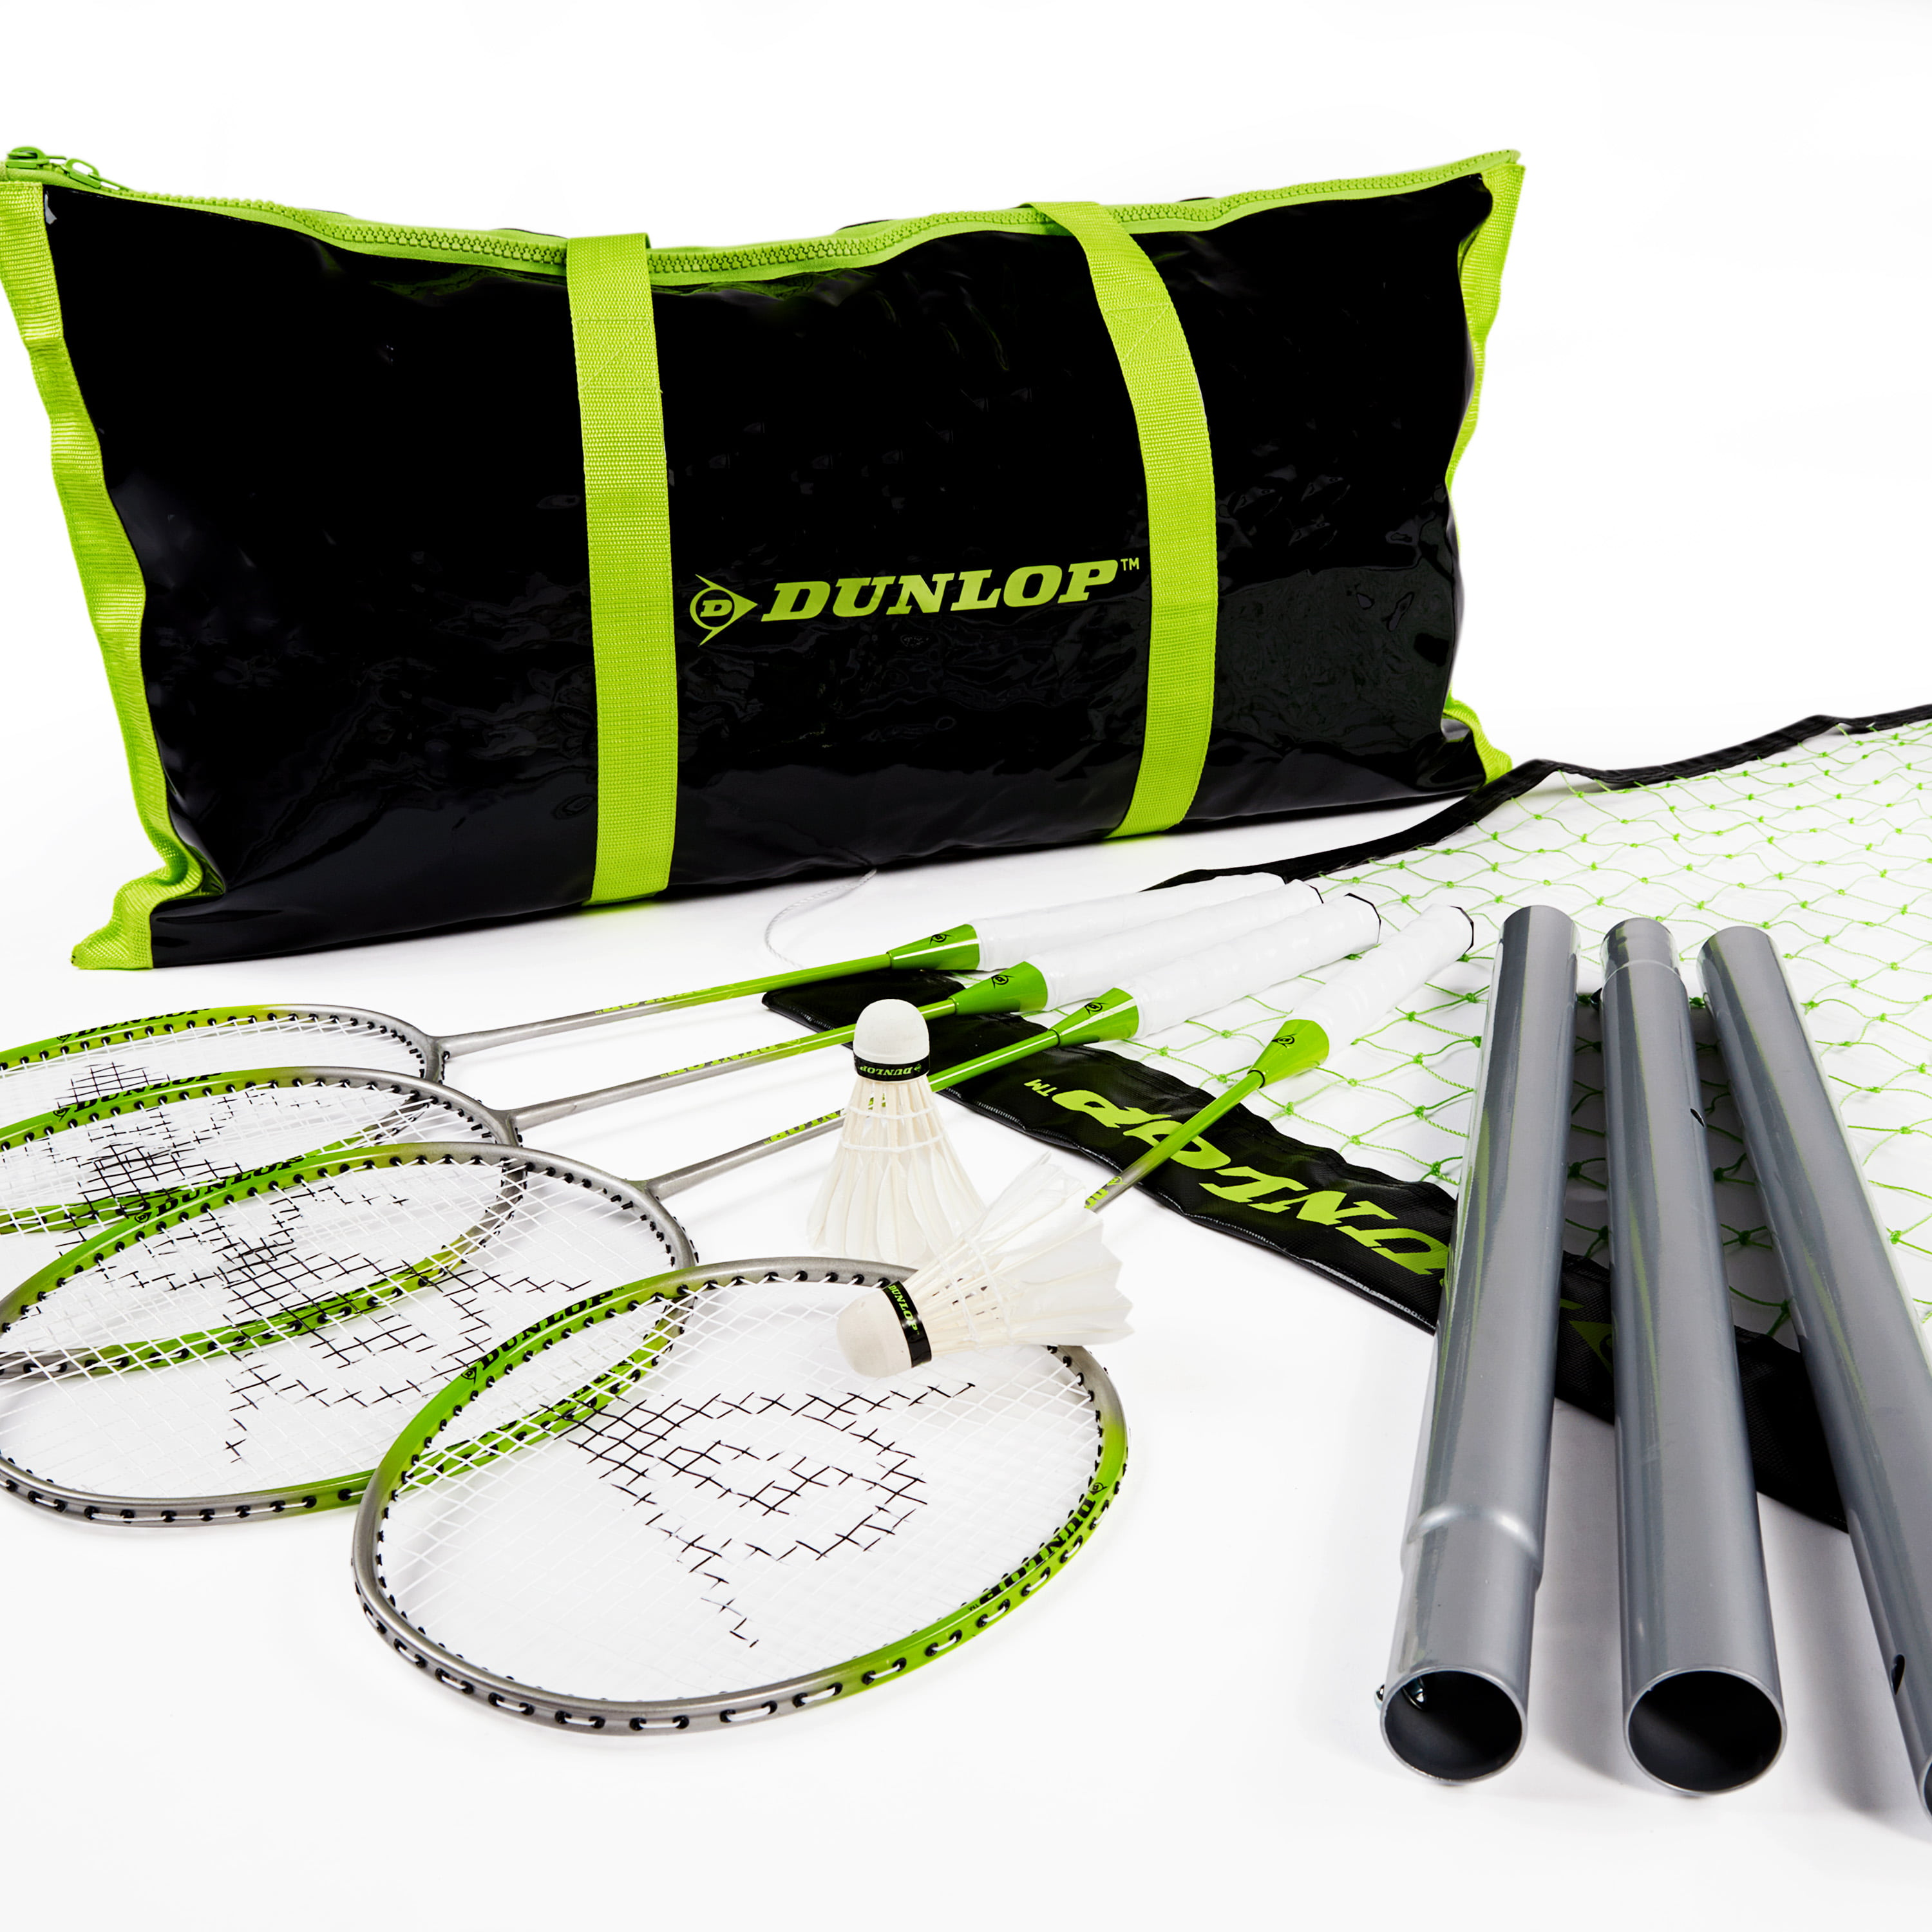 Dunlop Badminton Outdoor Lawn Game: Classic Backyard Party Sports Set with Carrying Bag by MD Sports